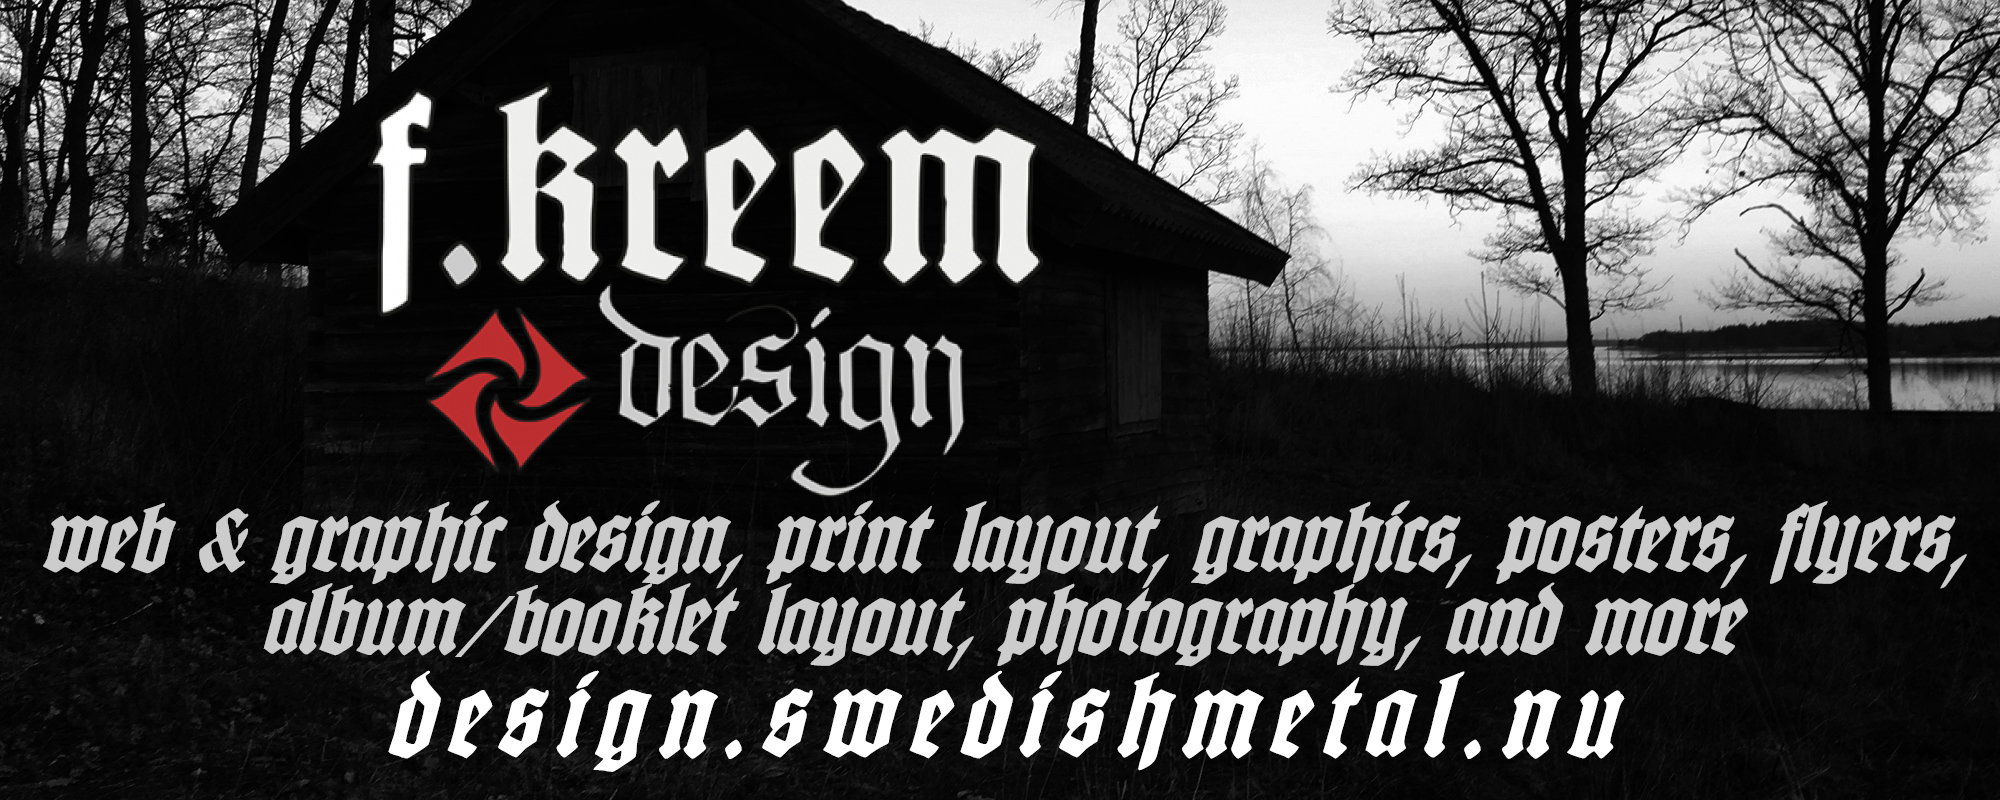 F.Kreem Design - Webb, graphic design & more